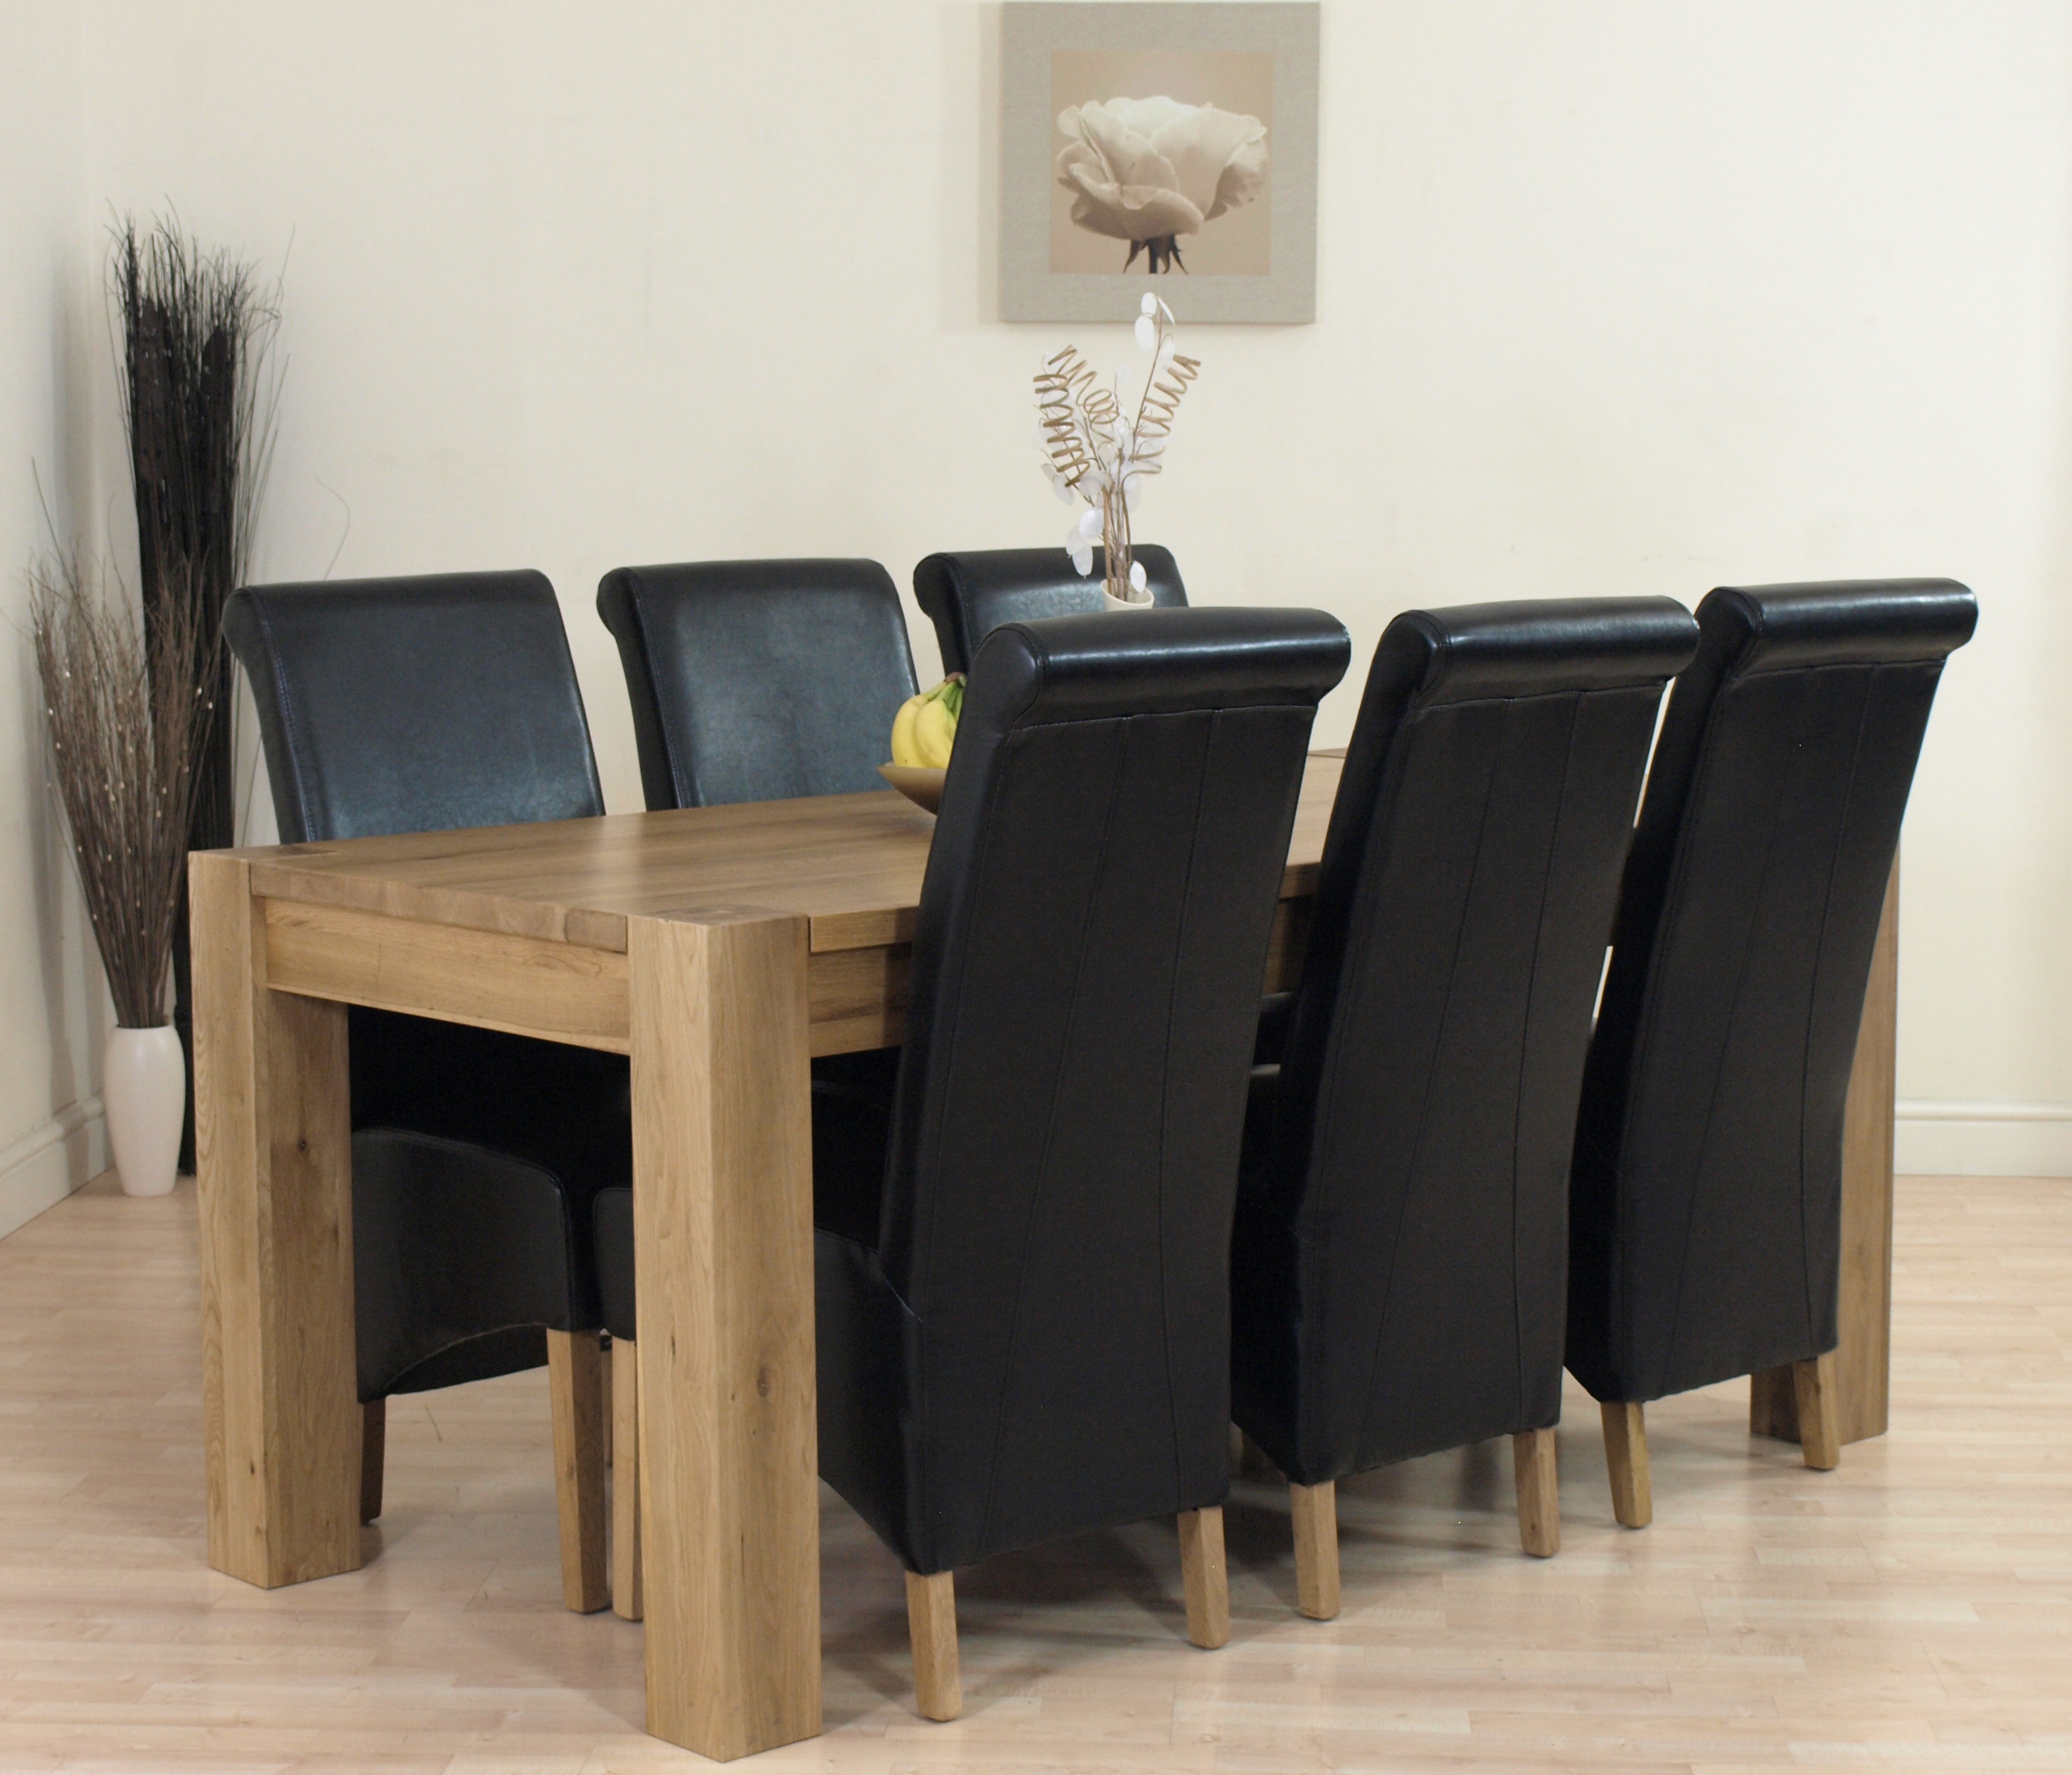 Details About KUBA SOLID OAK DINING TABLE AND 6 BLACK LEATHER CHAIRS. Full resolution  portraiture, nominally Width 2913 Height 2496 pixels, portraiture with #826849.